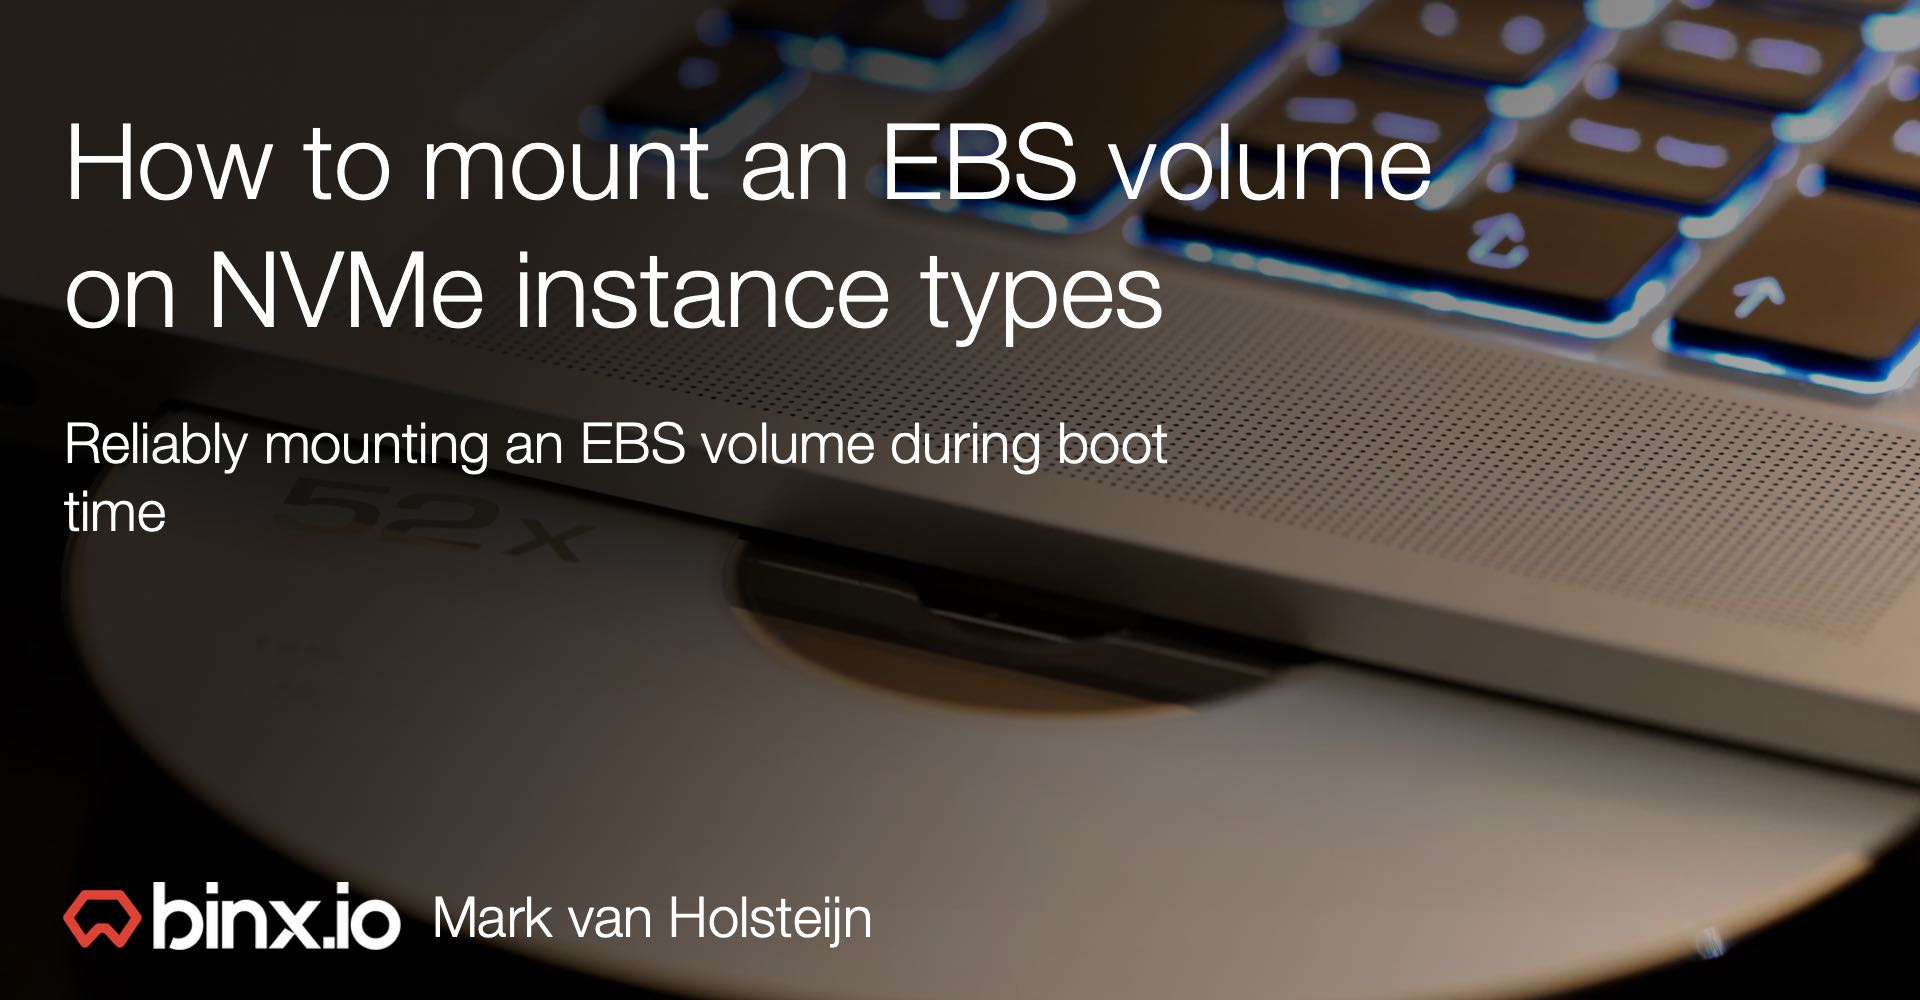 How to mount an EBS volume on NVMe based instance types